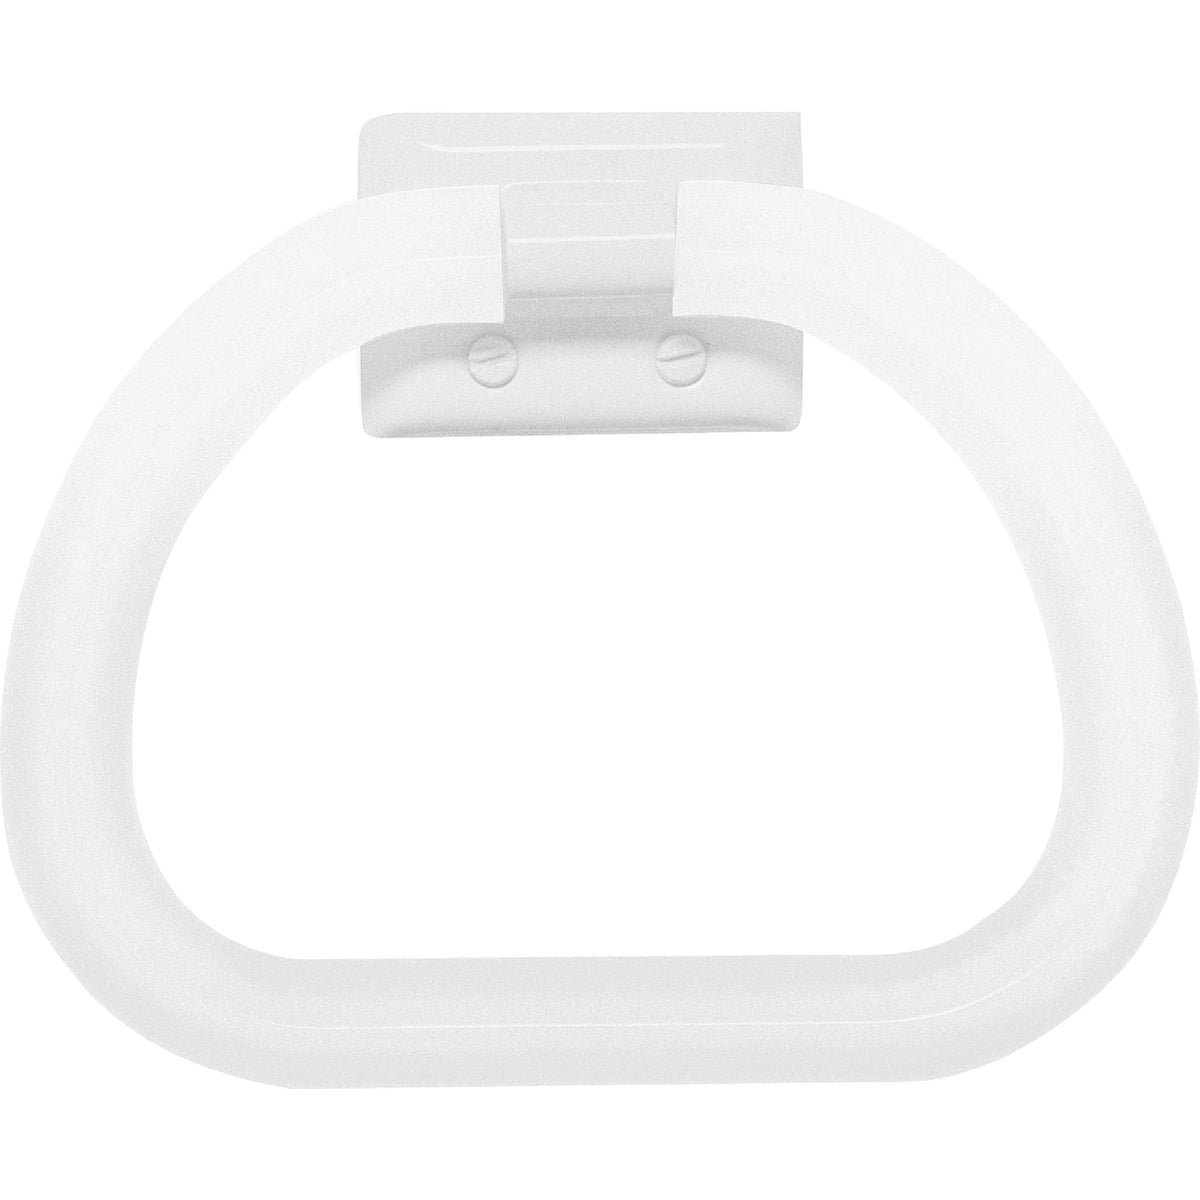 WHT TOWEL RING - 48230 by Decko Bath